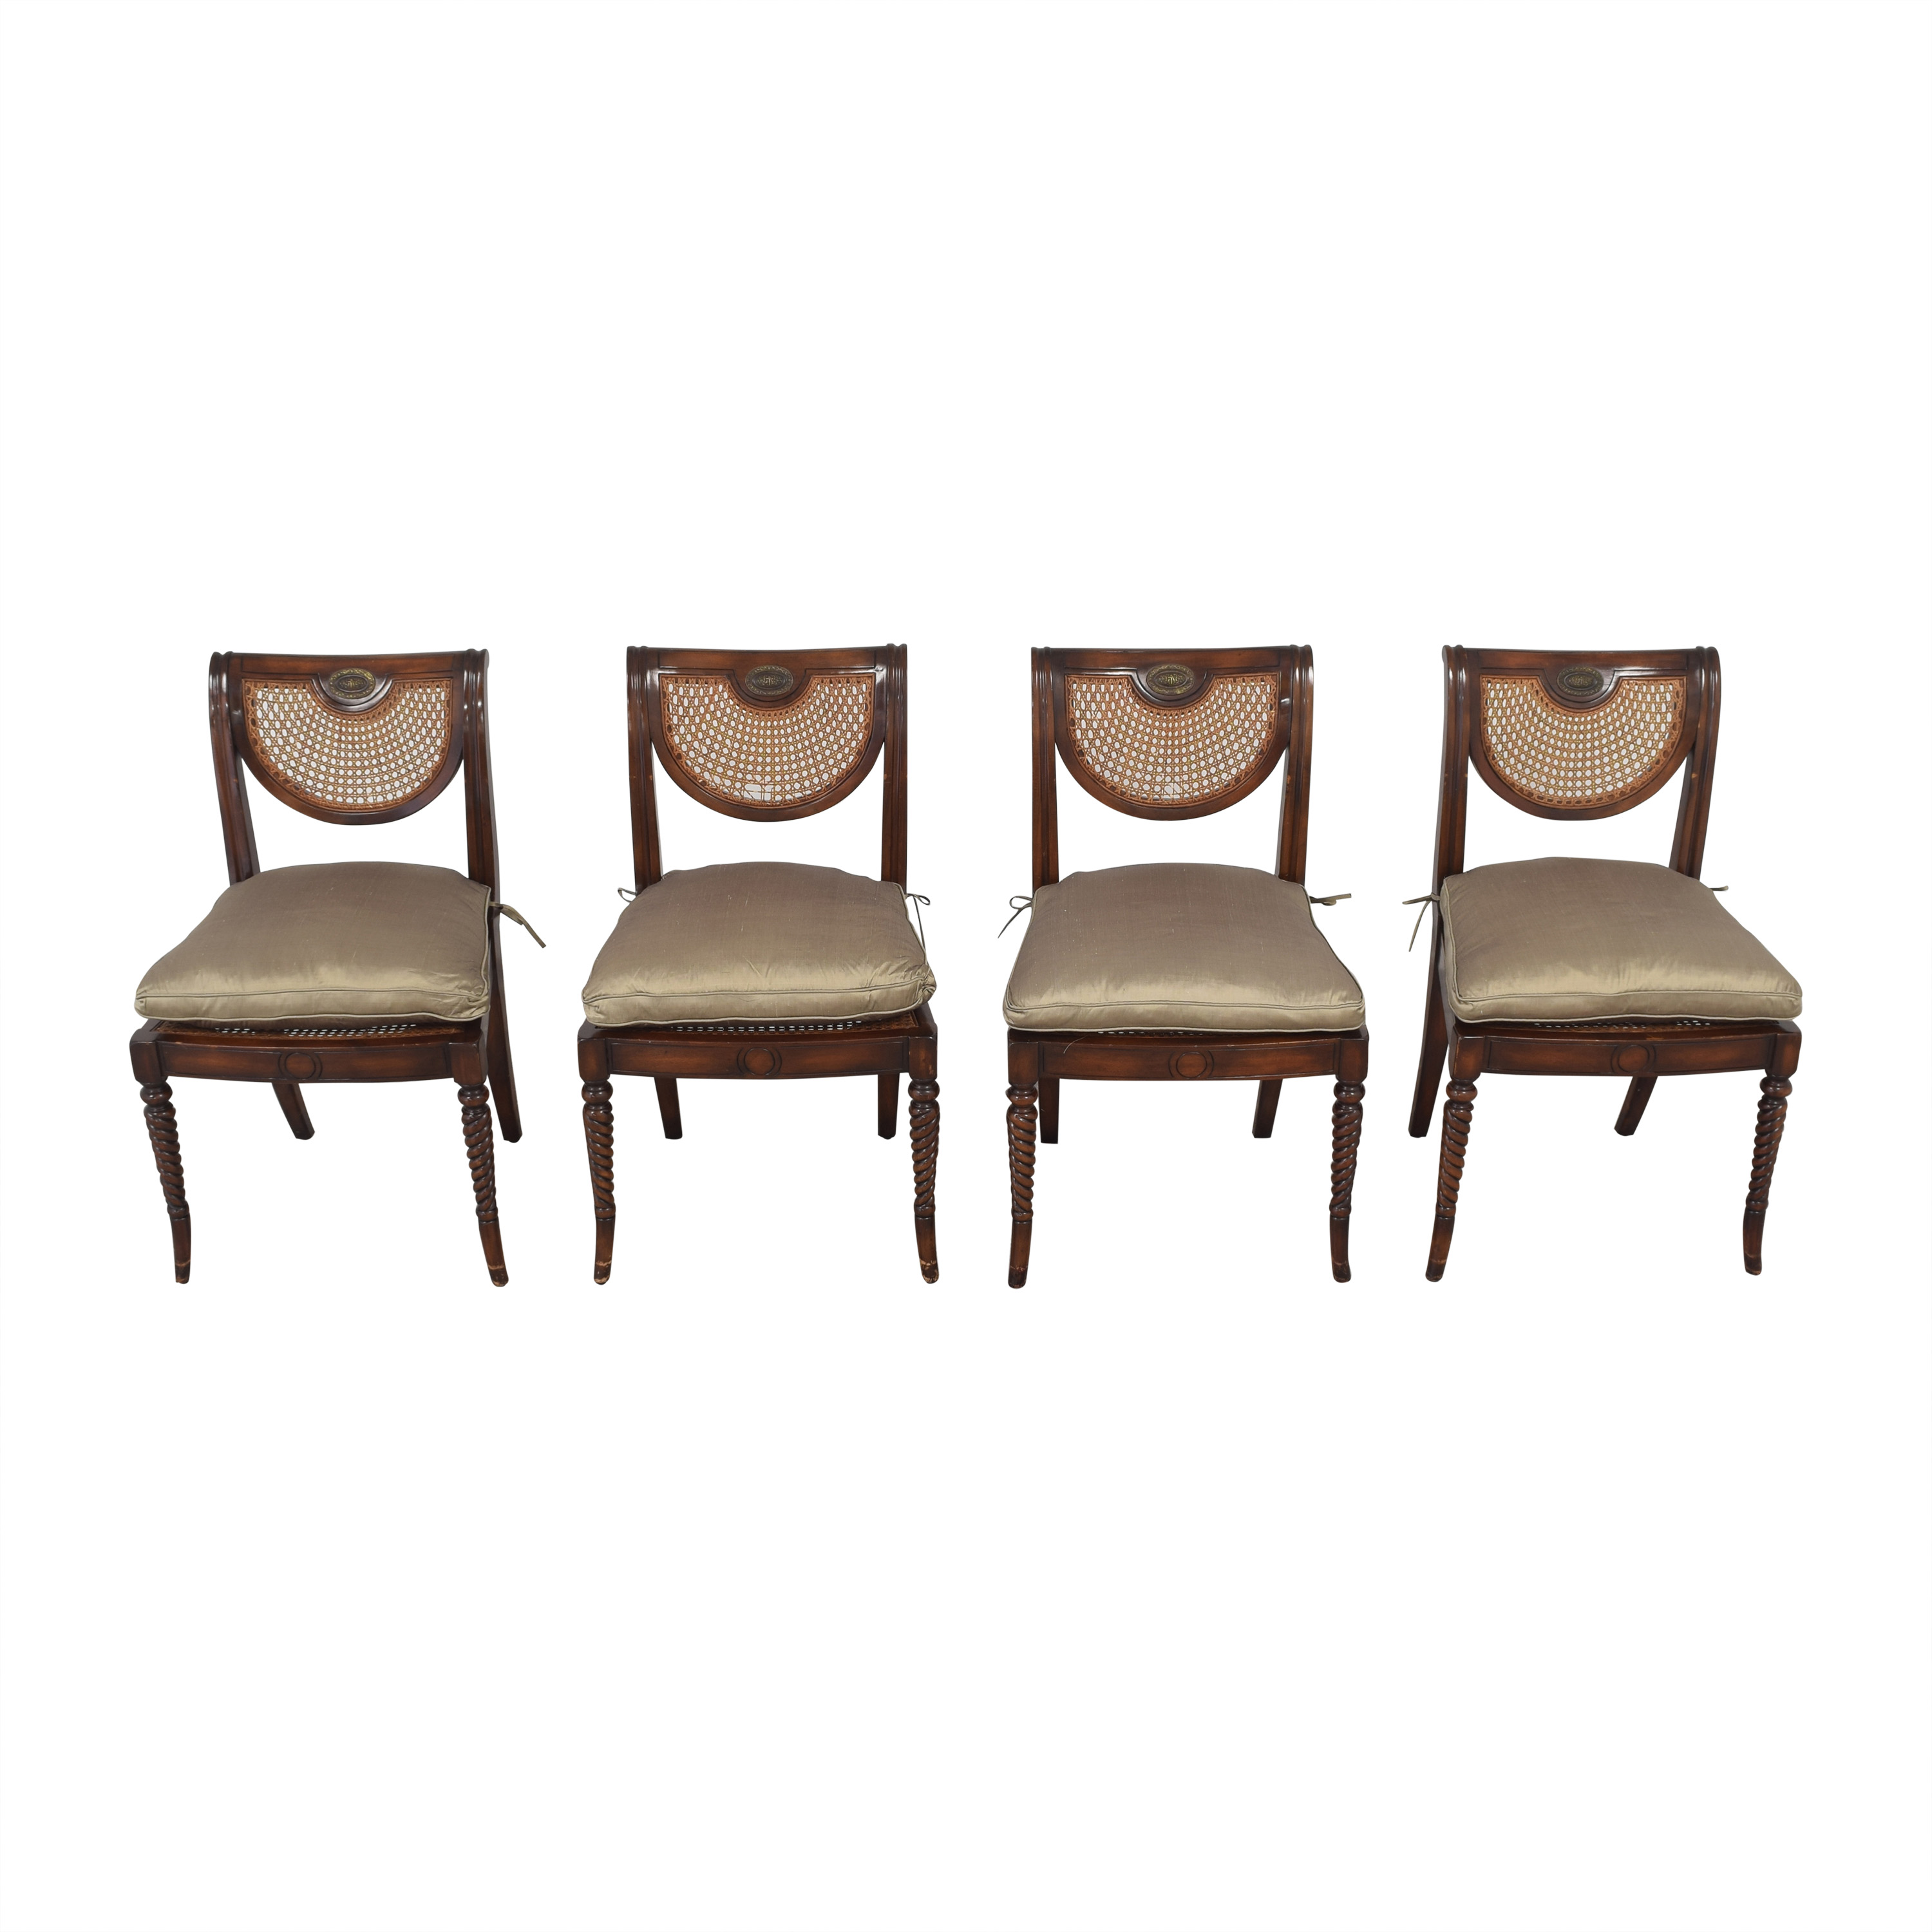 ABC Carpet & Home ABC Carpet & Home Dining Chairs discount